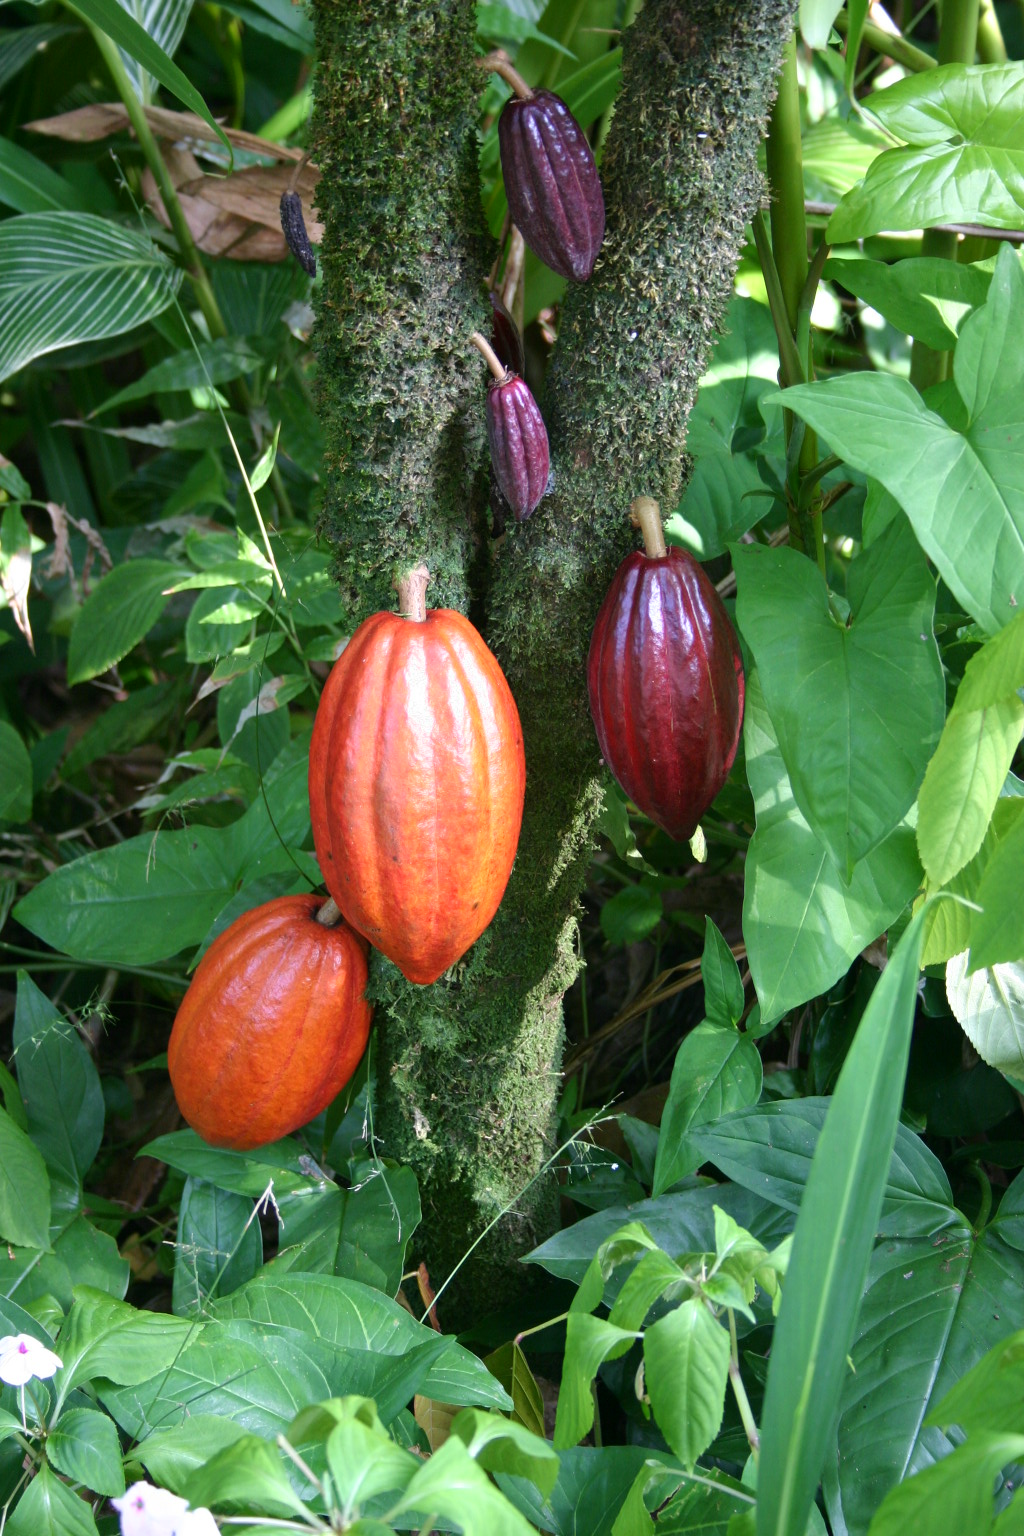 http://upload.wikimedia.org/wikipedia/commons/e/e0/Cocoa_Pods.JPG